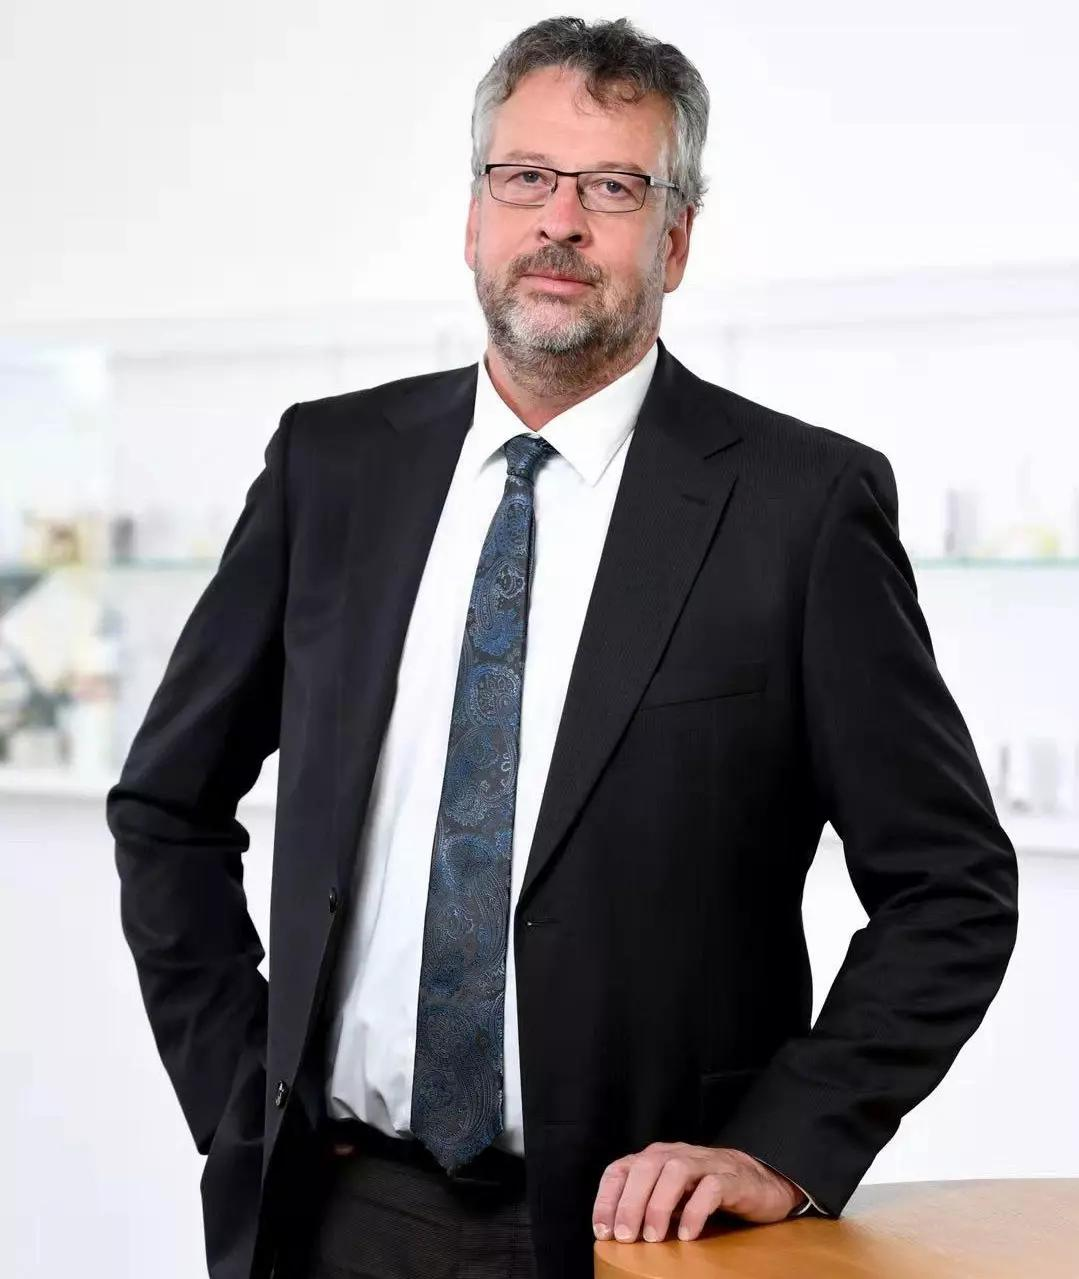 Scantech Digital GmbH Starts Sailing and Welcomes Region Manager on Board 1